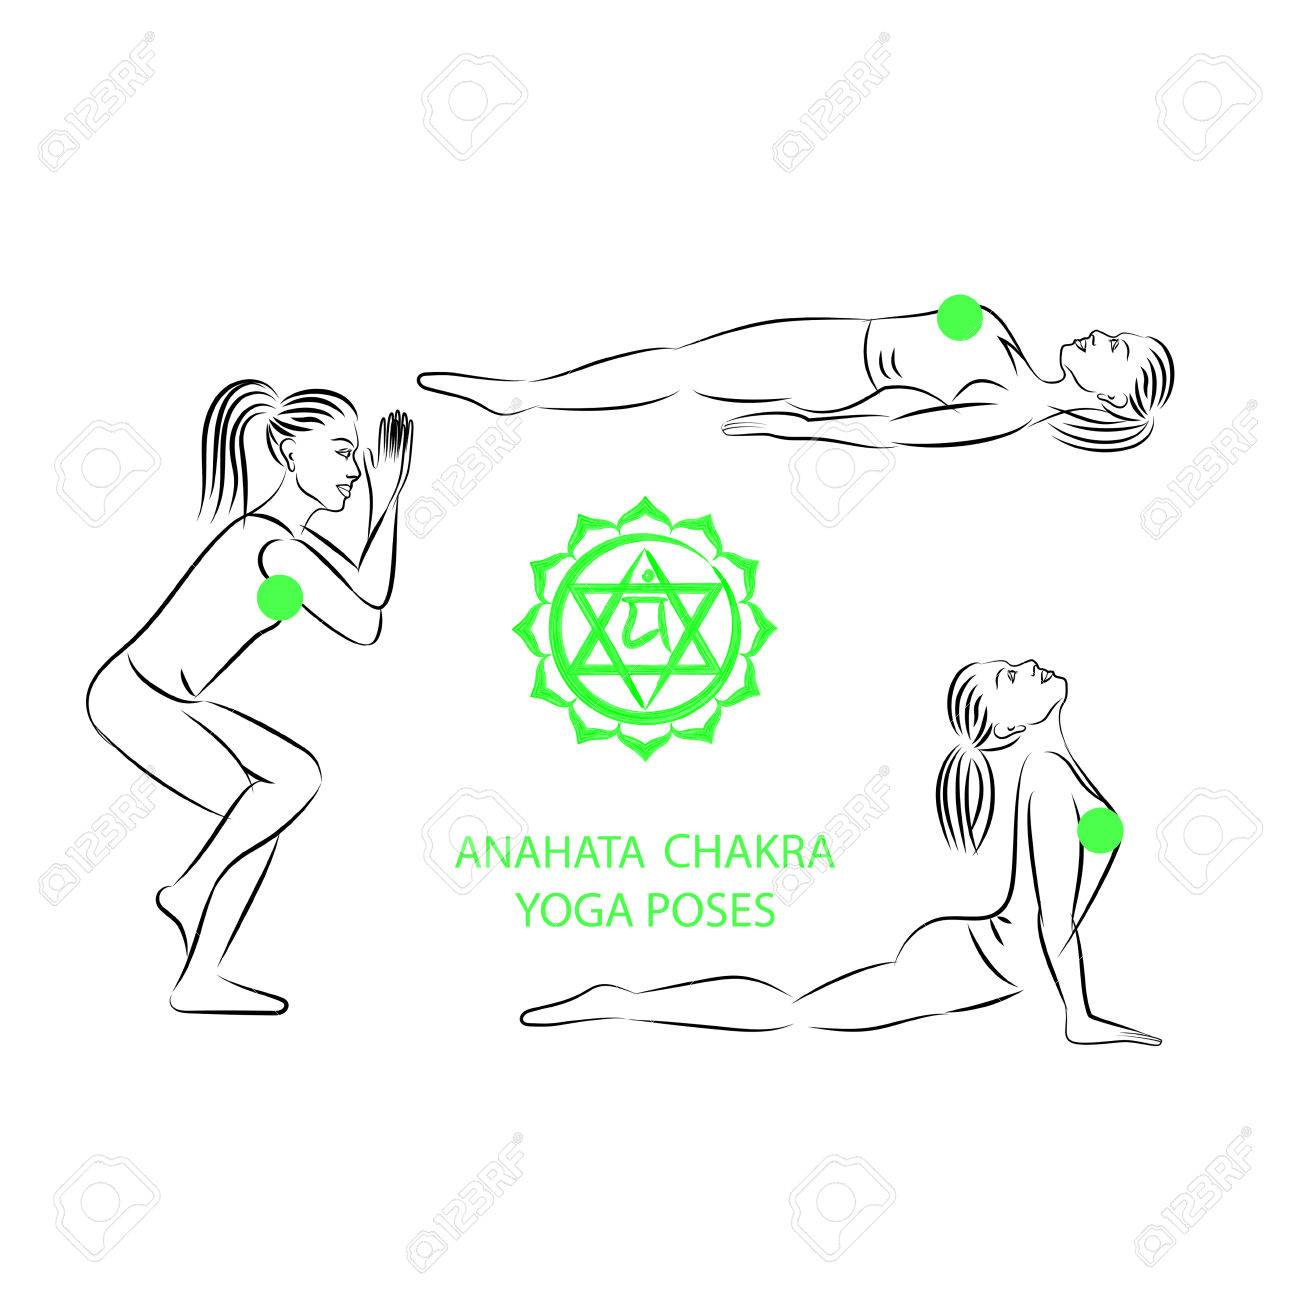 Yoga poses for Anahata chakra activation